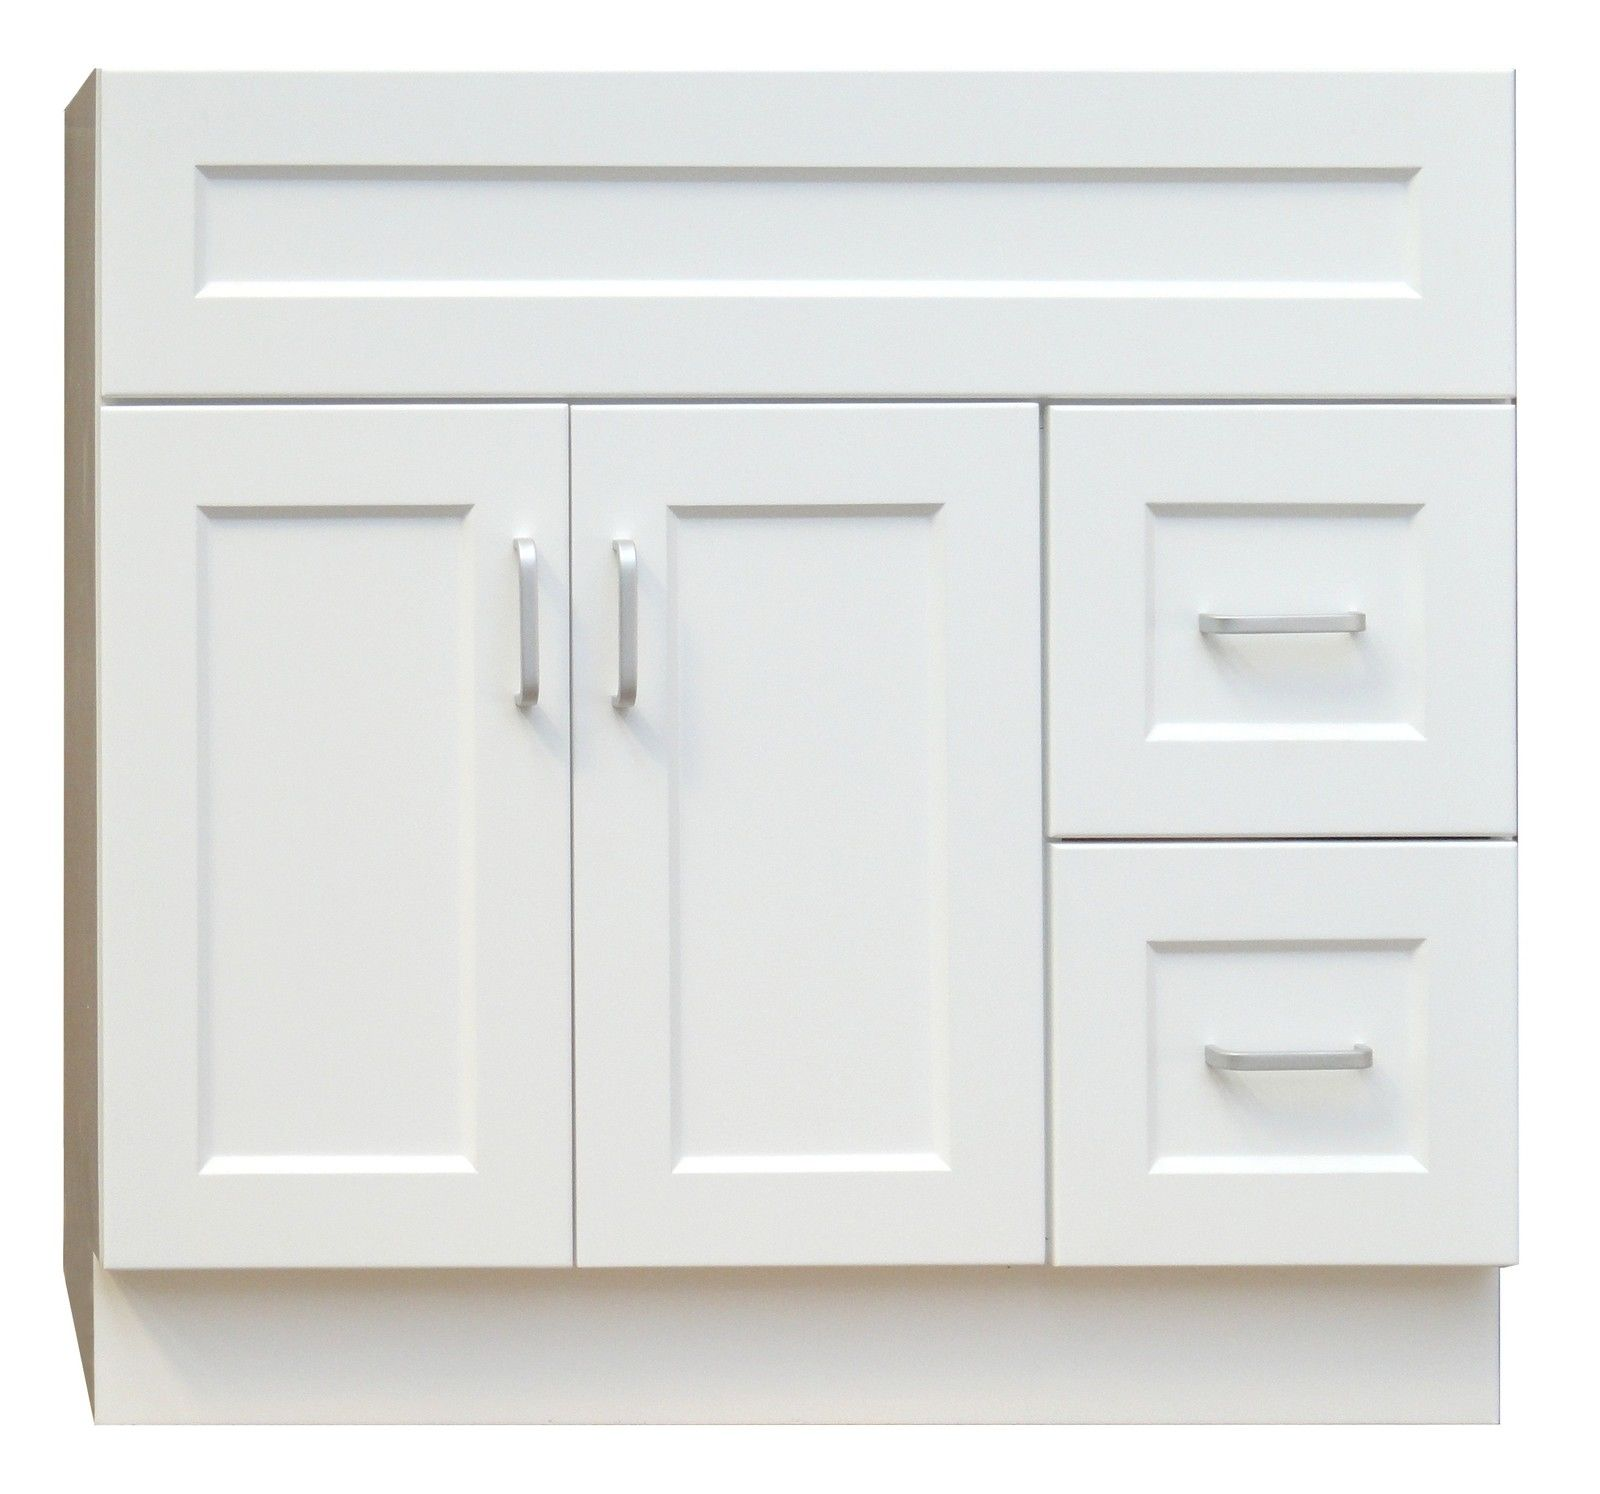 12 wide bathroom cabinet in columbia deebonk for Bathroom cabinets 12 inches wide